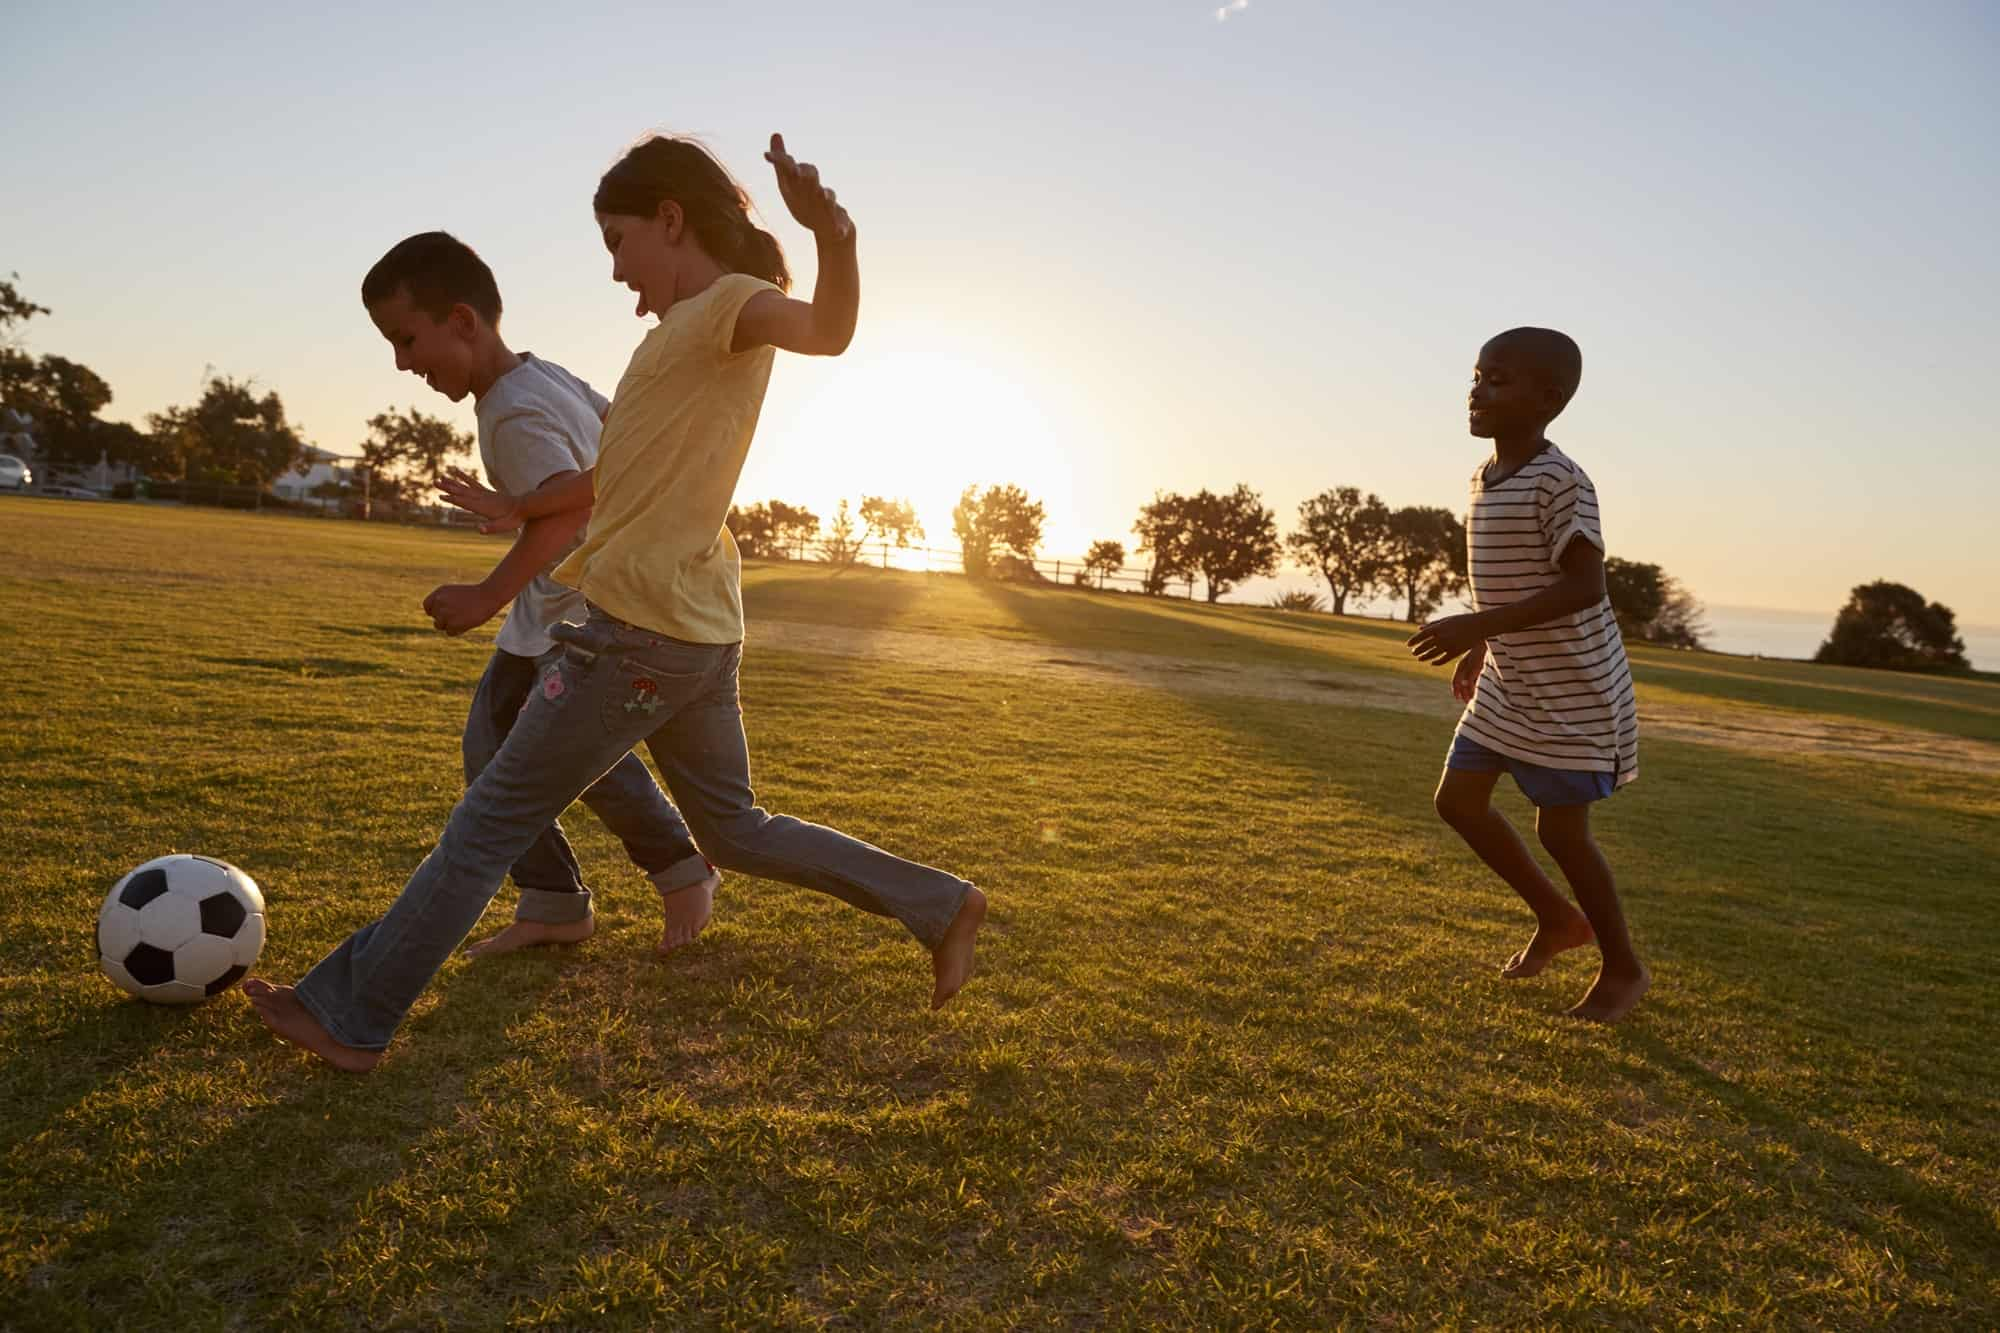 Three children playing football in a field